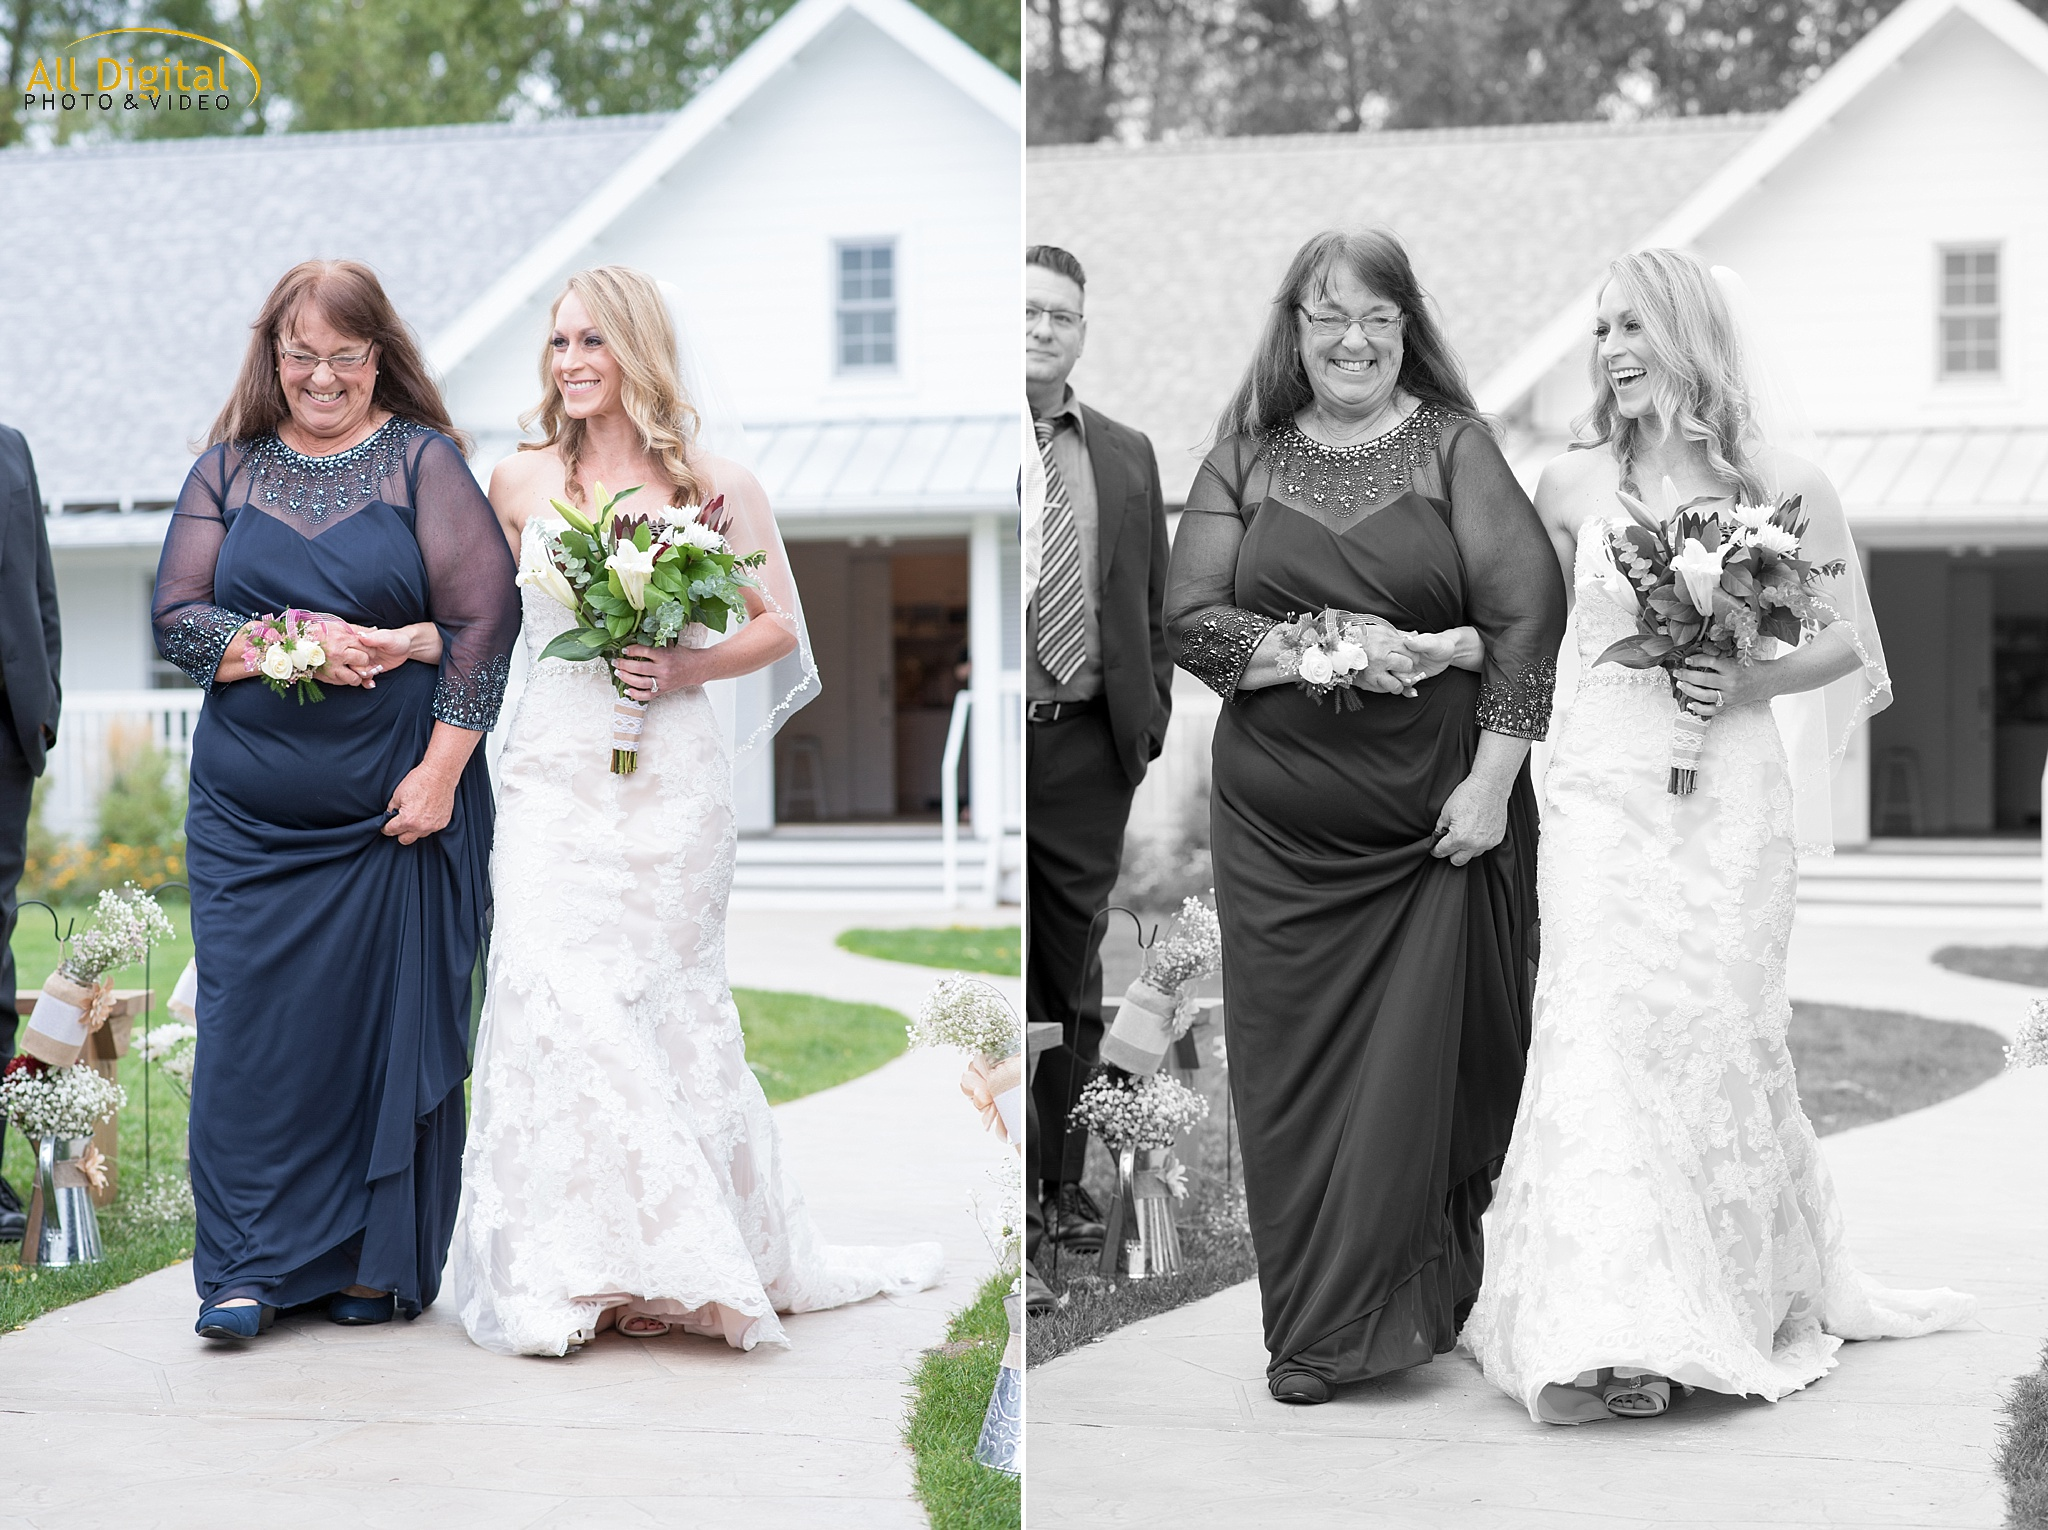 Tina & her mother walking down the aisle at Raccoon Creek.